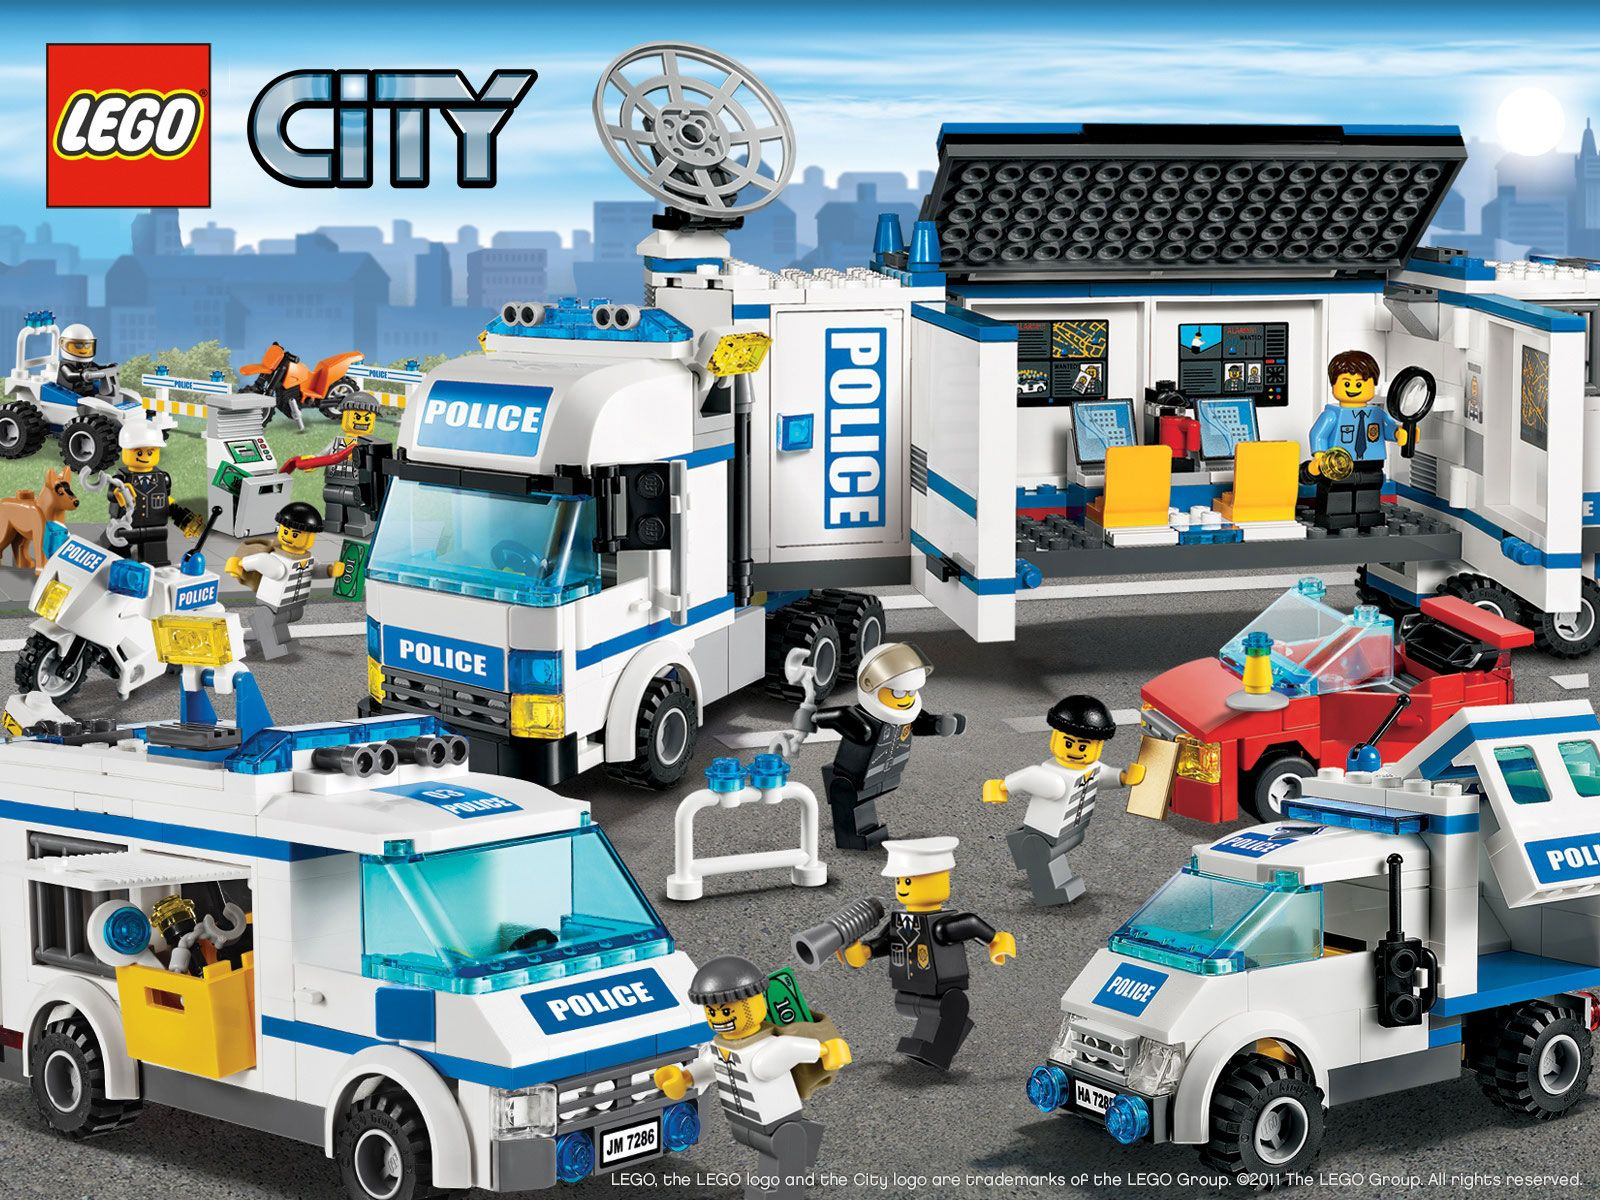 lego city police poster joey 39 s bedroom ideas pinterest lego city police lego city and lego. Black Bedroom Furniture Sets. Home Design Ideas